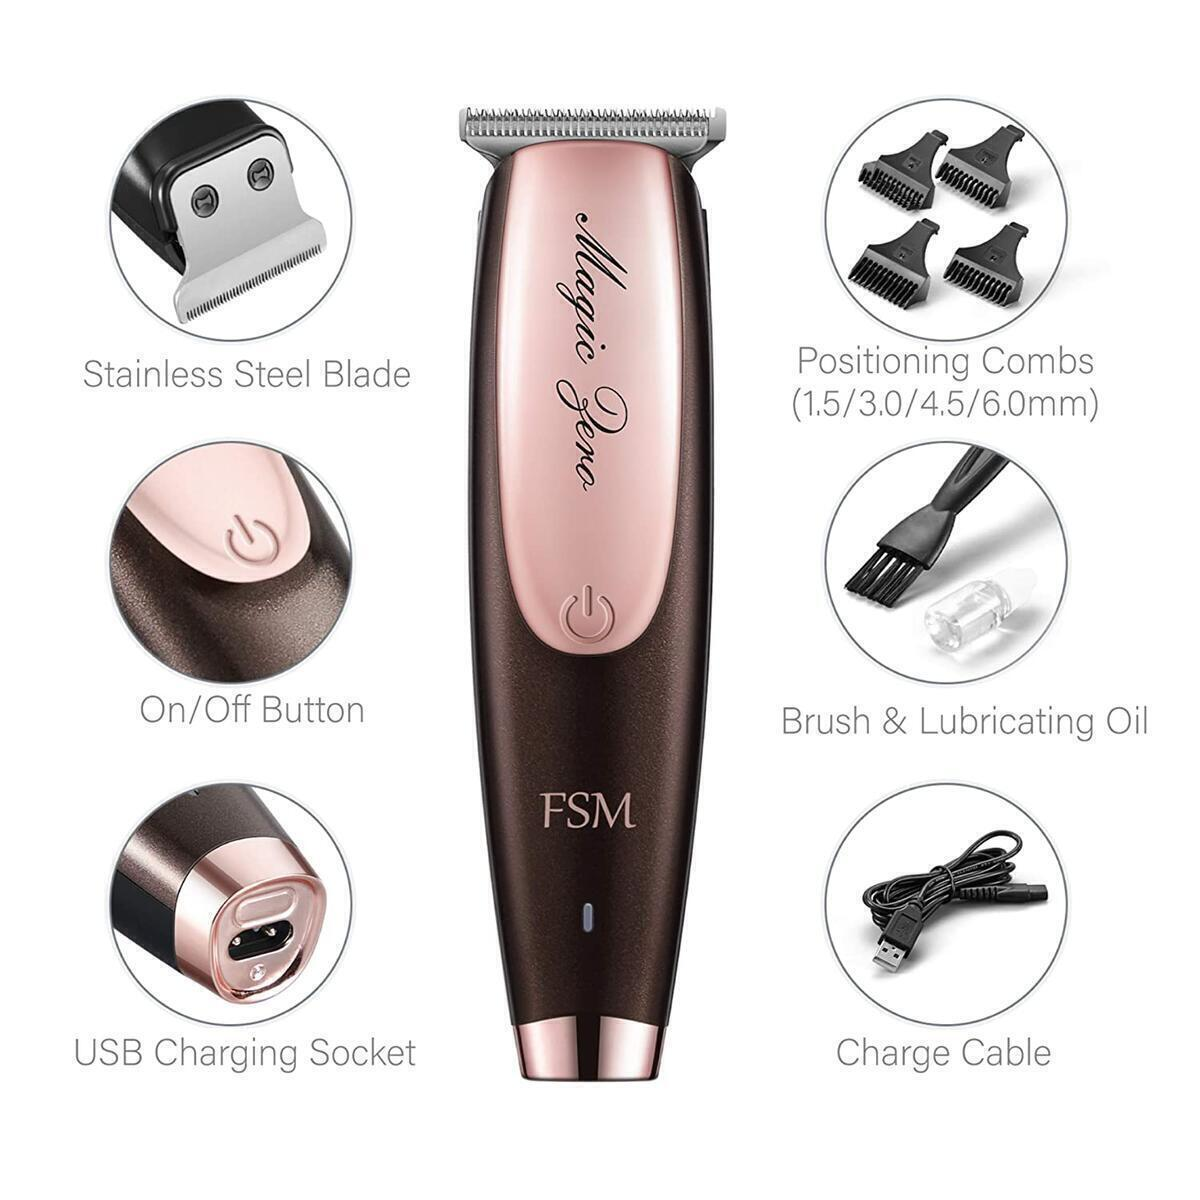 FSM Professional Cordless Hair Clippers for Men, Women and Children – Wireless USB Rechargeable Haircutting Trimmer Beard Grooming Shaver with High-Performance Stainless-Steel Blade and 4 Guides